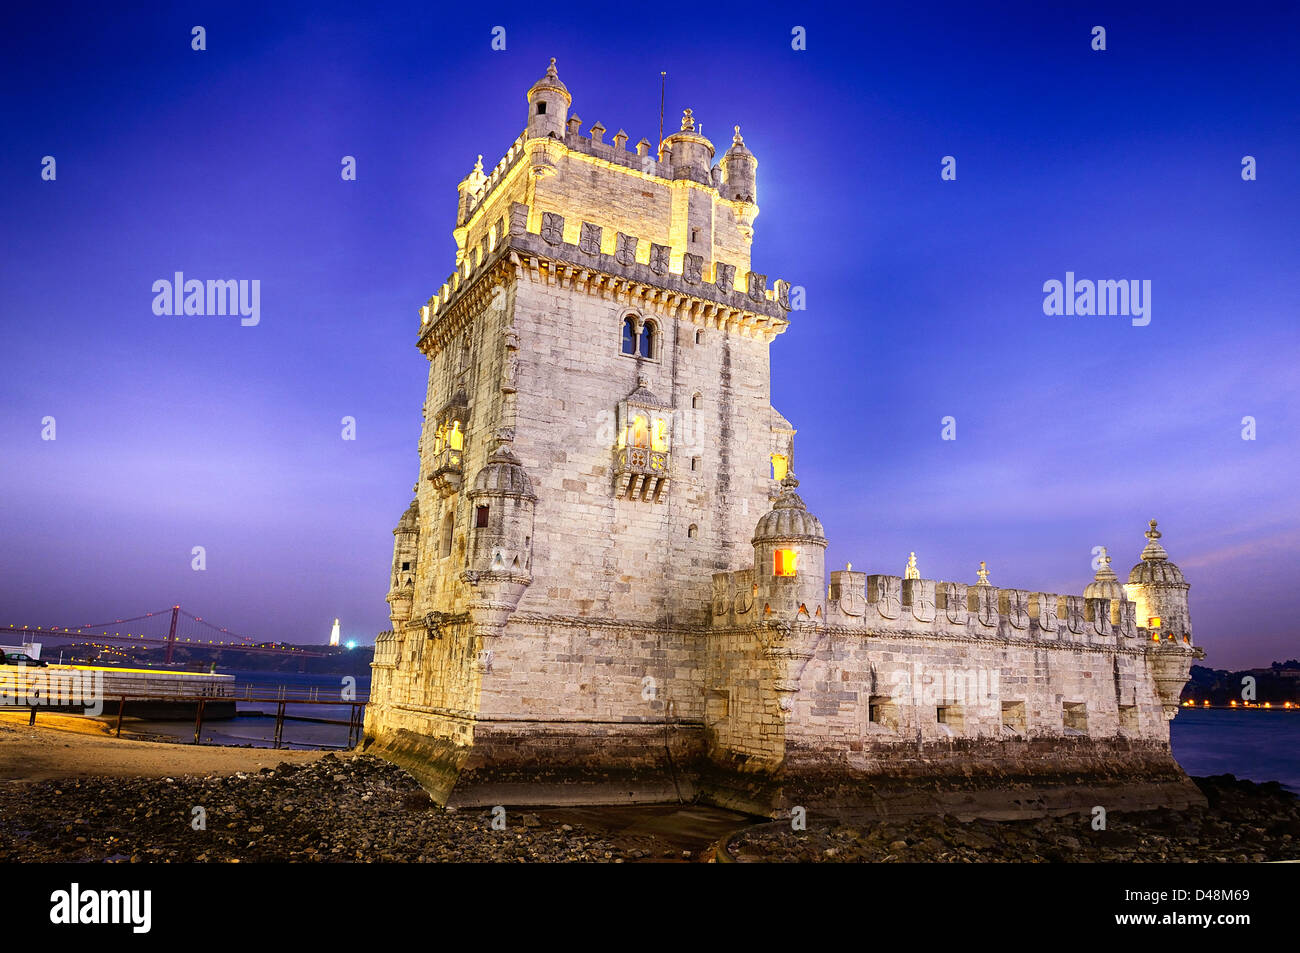 Belem tower in Lisbon city, Portugal Stock Photo